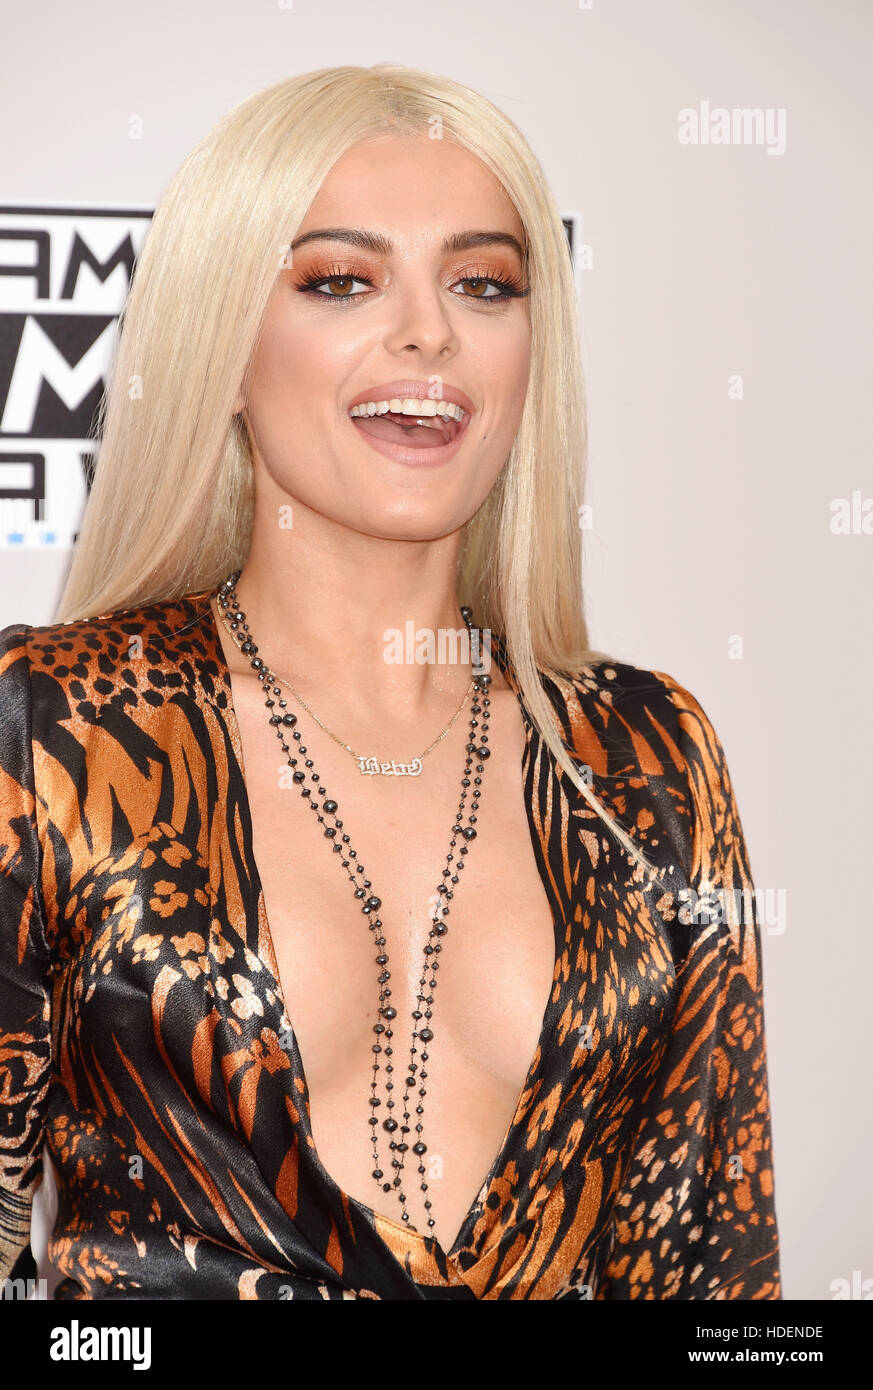 bebe rexha stock photos bebe rexha stock images alamy